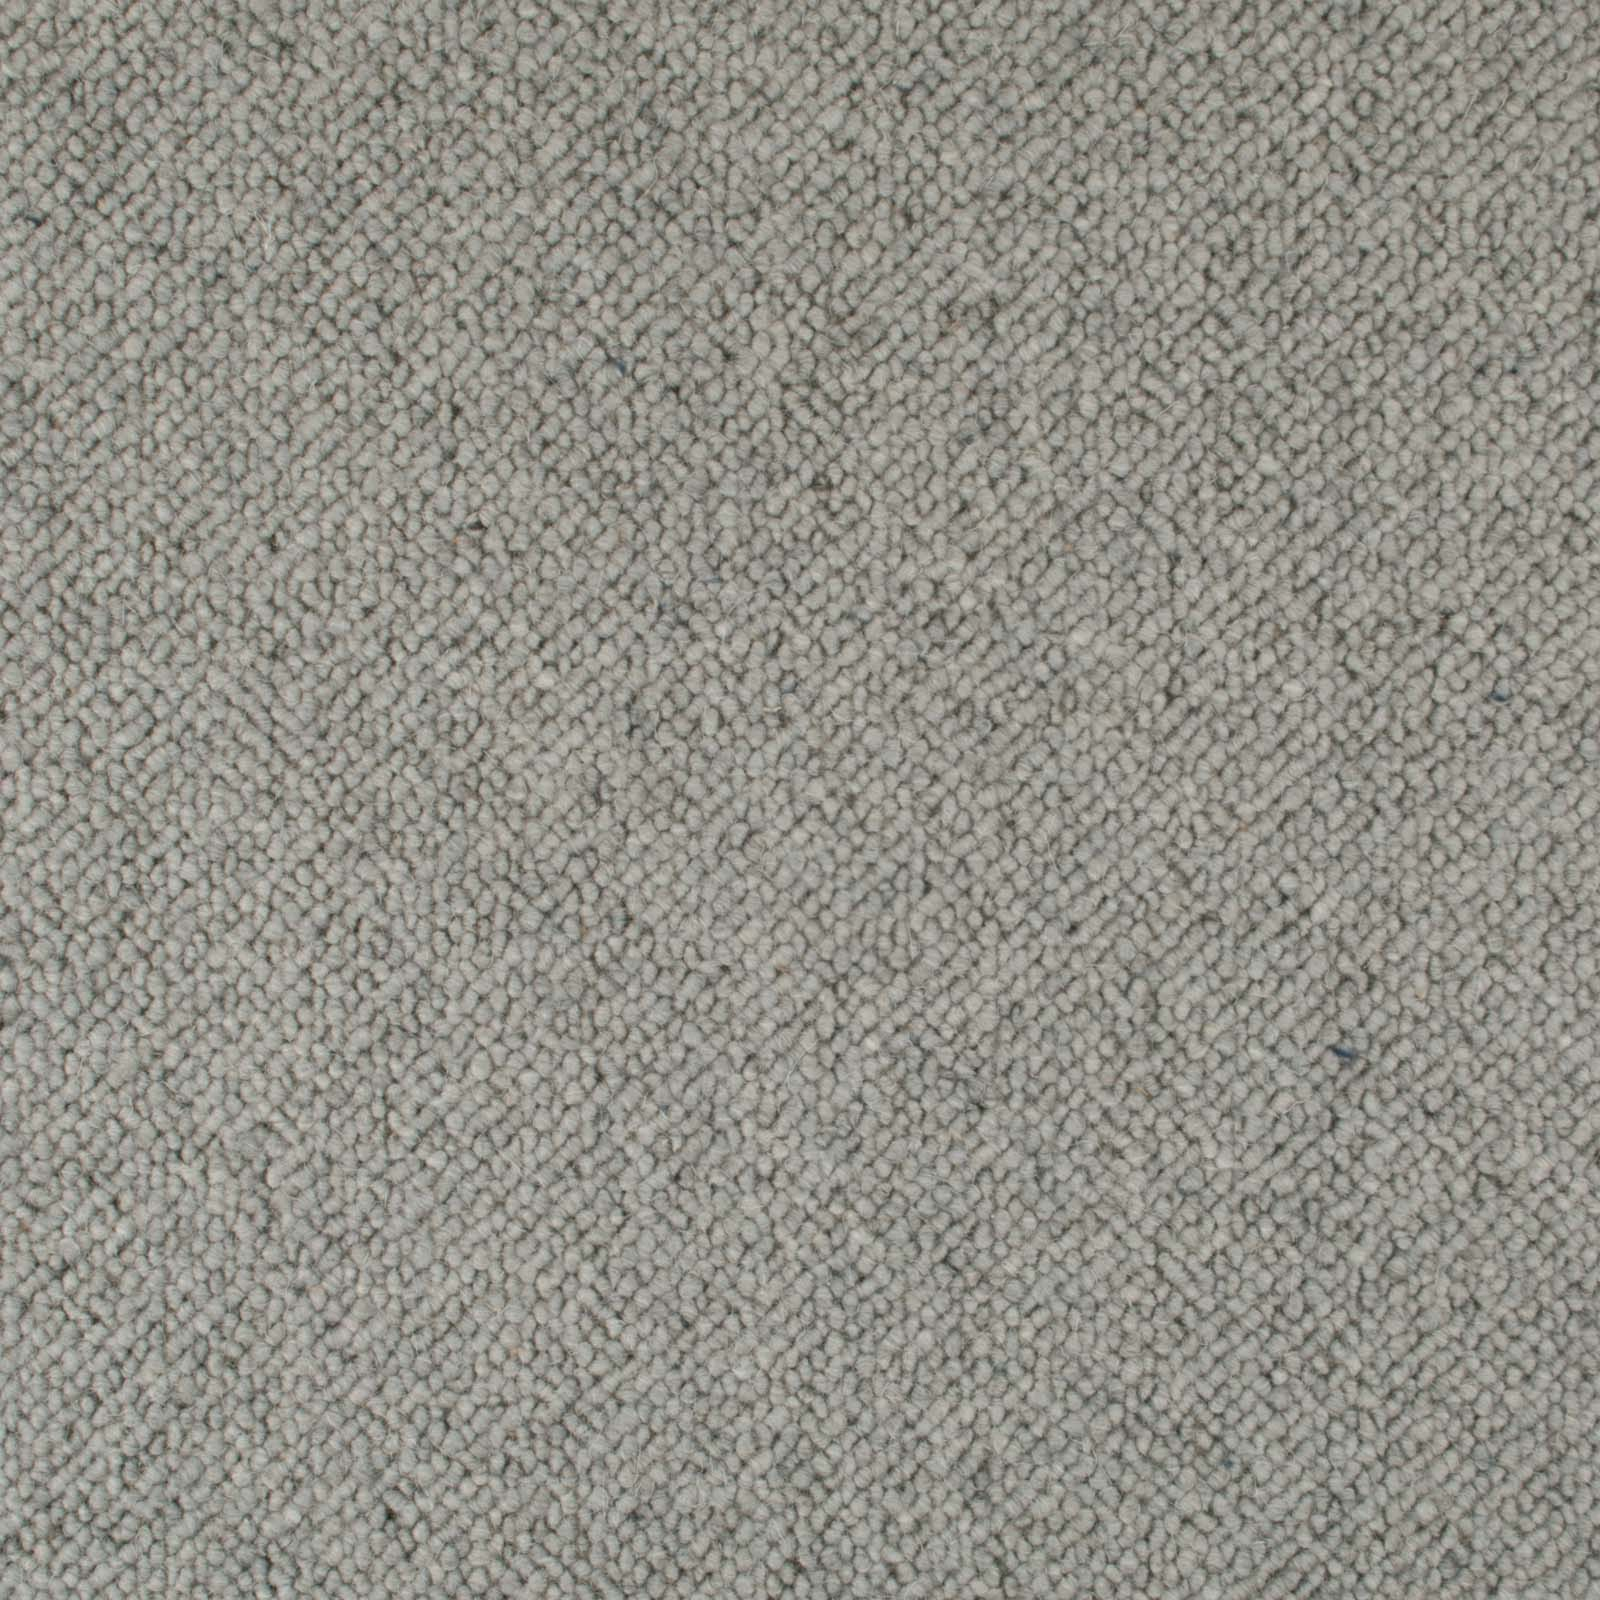 Dolphin Corsa Berber Deluxe Wool Carpet - Far